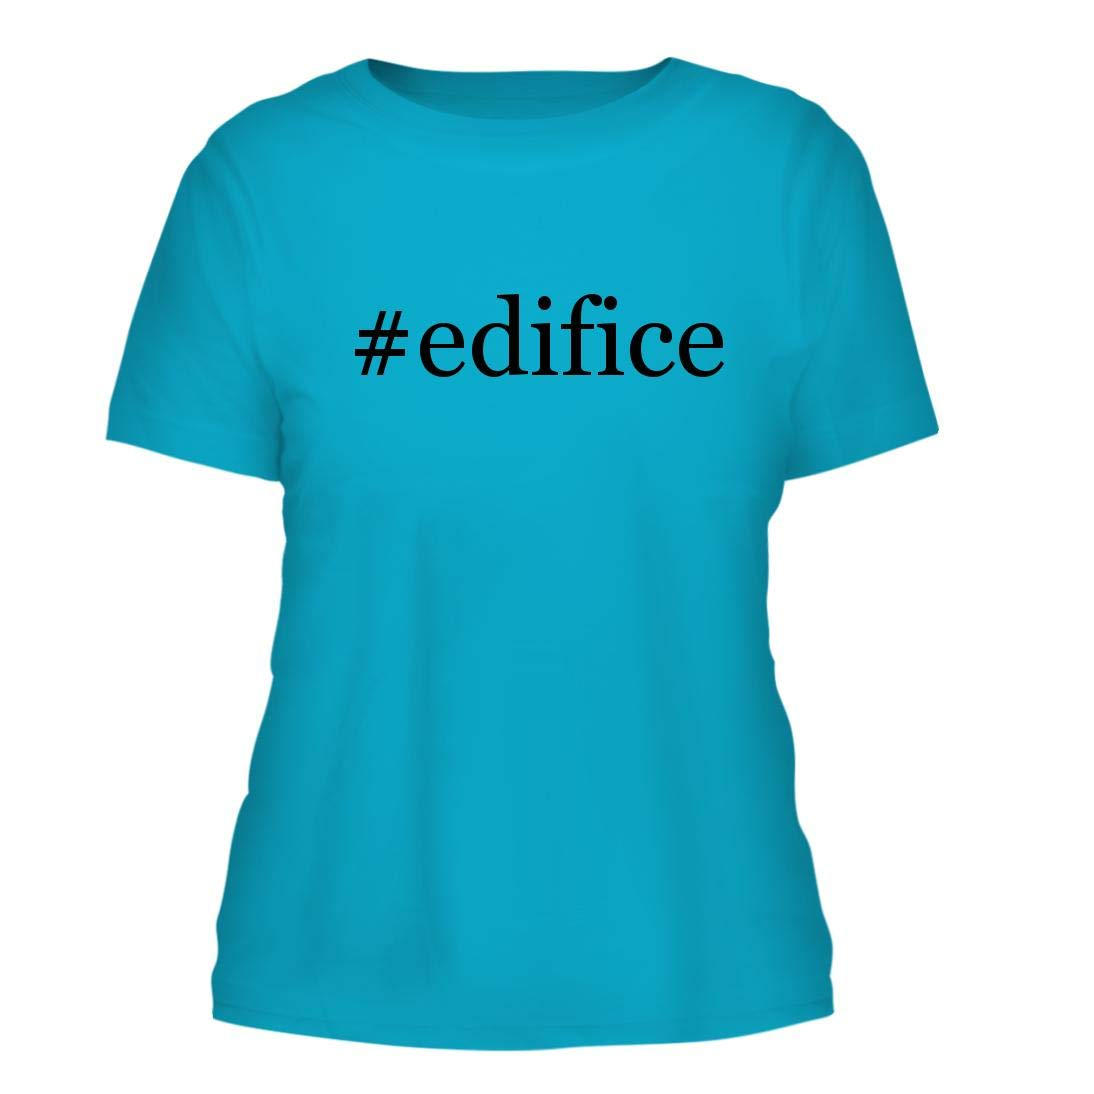 #Edifice - A Nice Hashtag Misses Cut Women's Short Sleeve T-Shirt, Aqua, Large by Shirt Me Up